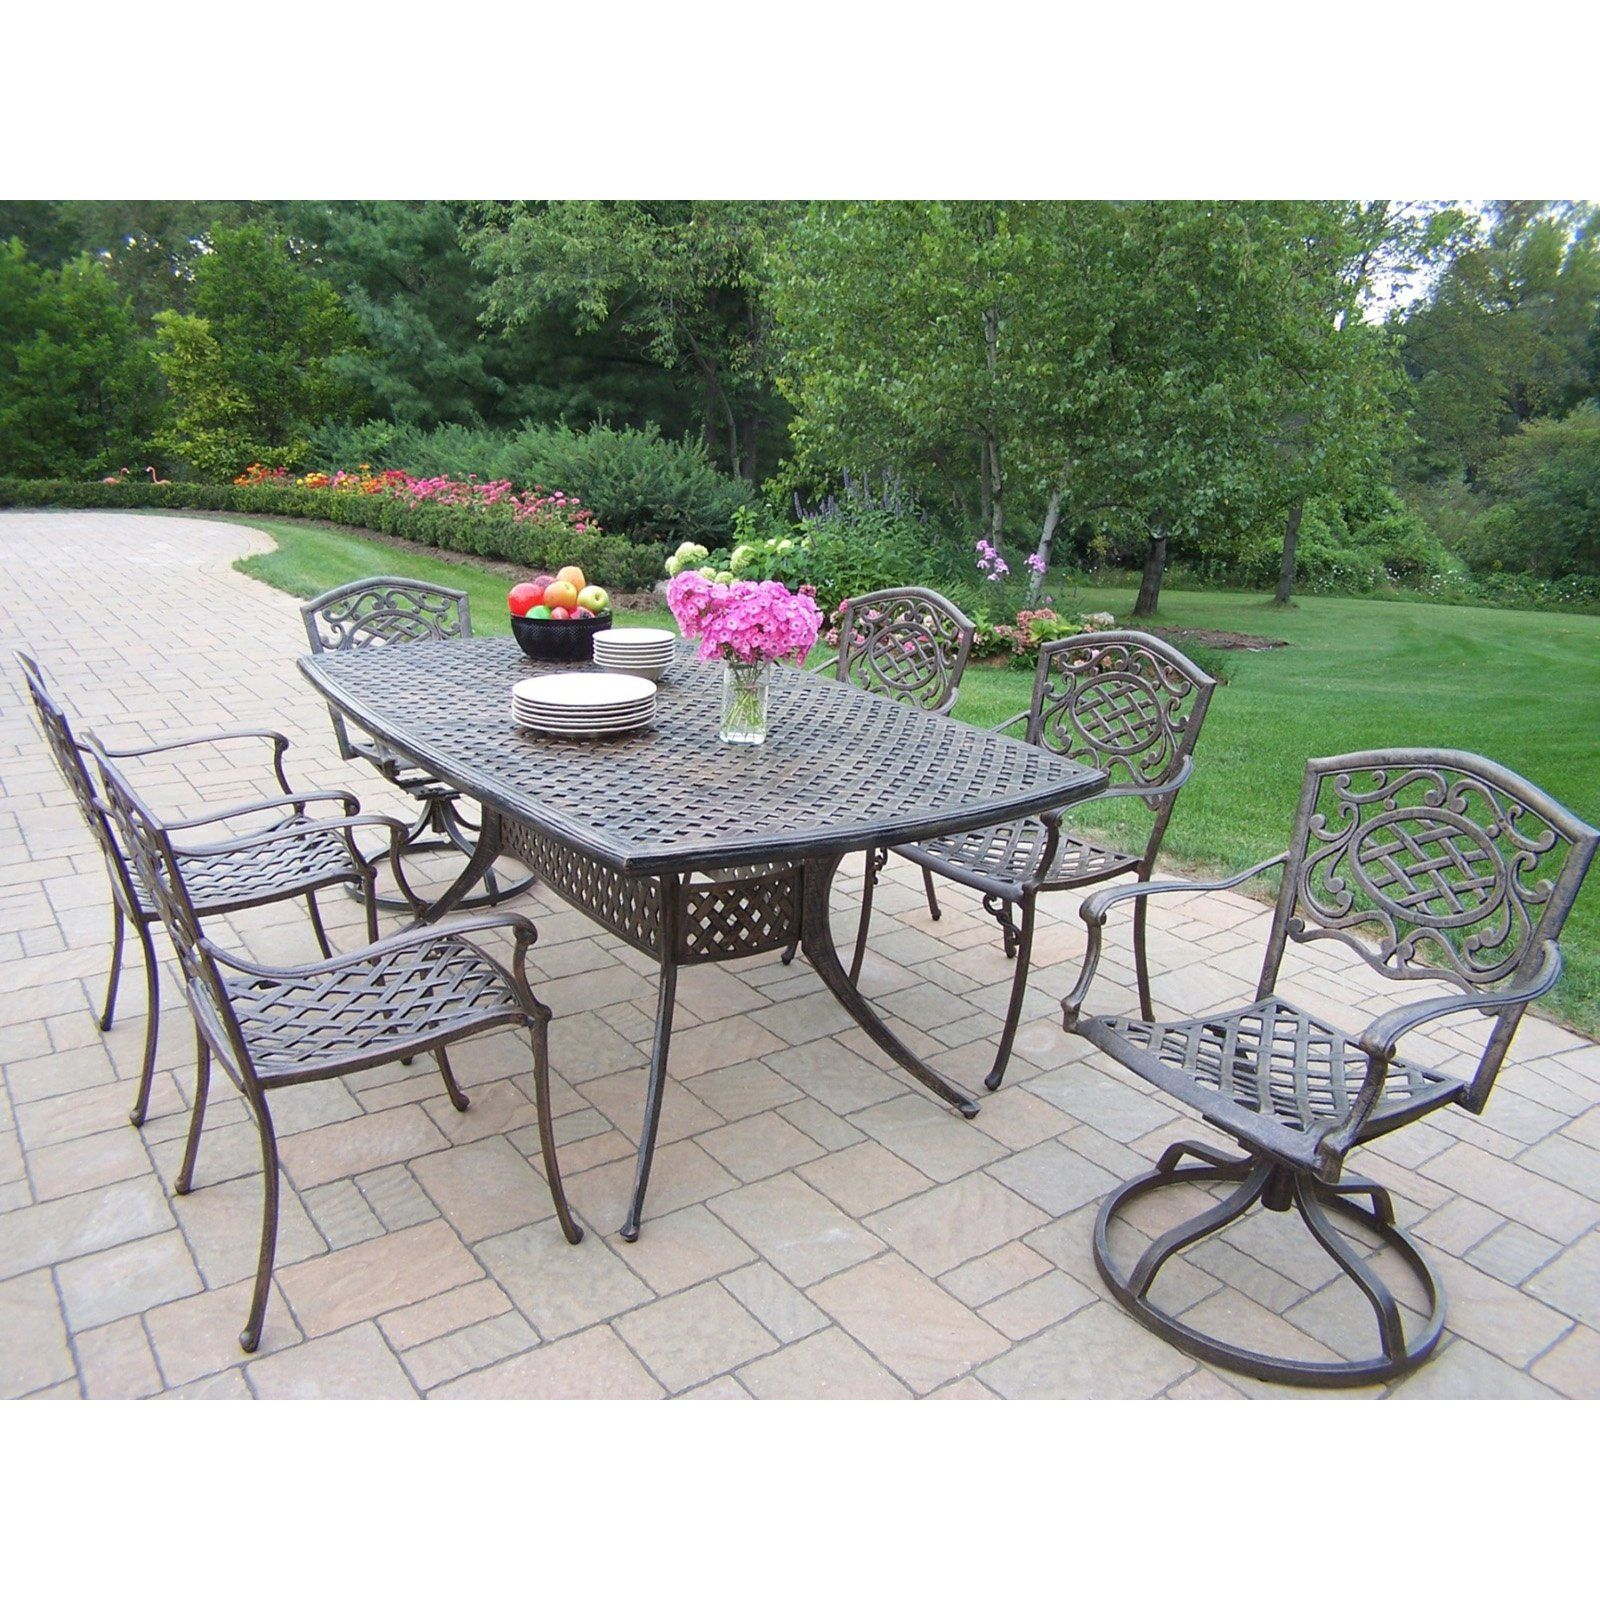 Outdoor Oakland Living Oxford Mississippi Cast Aluminum Patio Dining